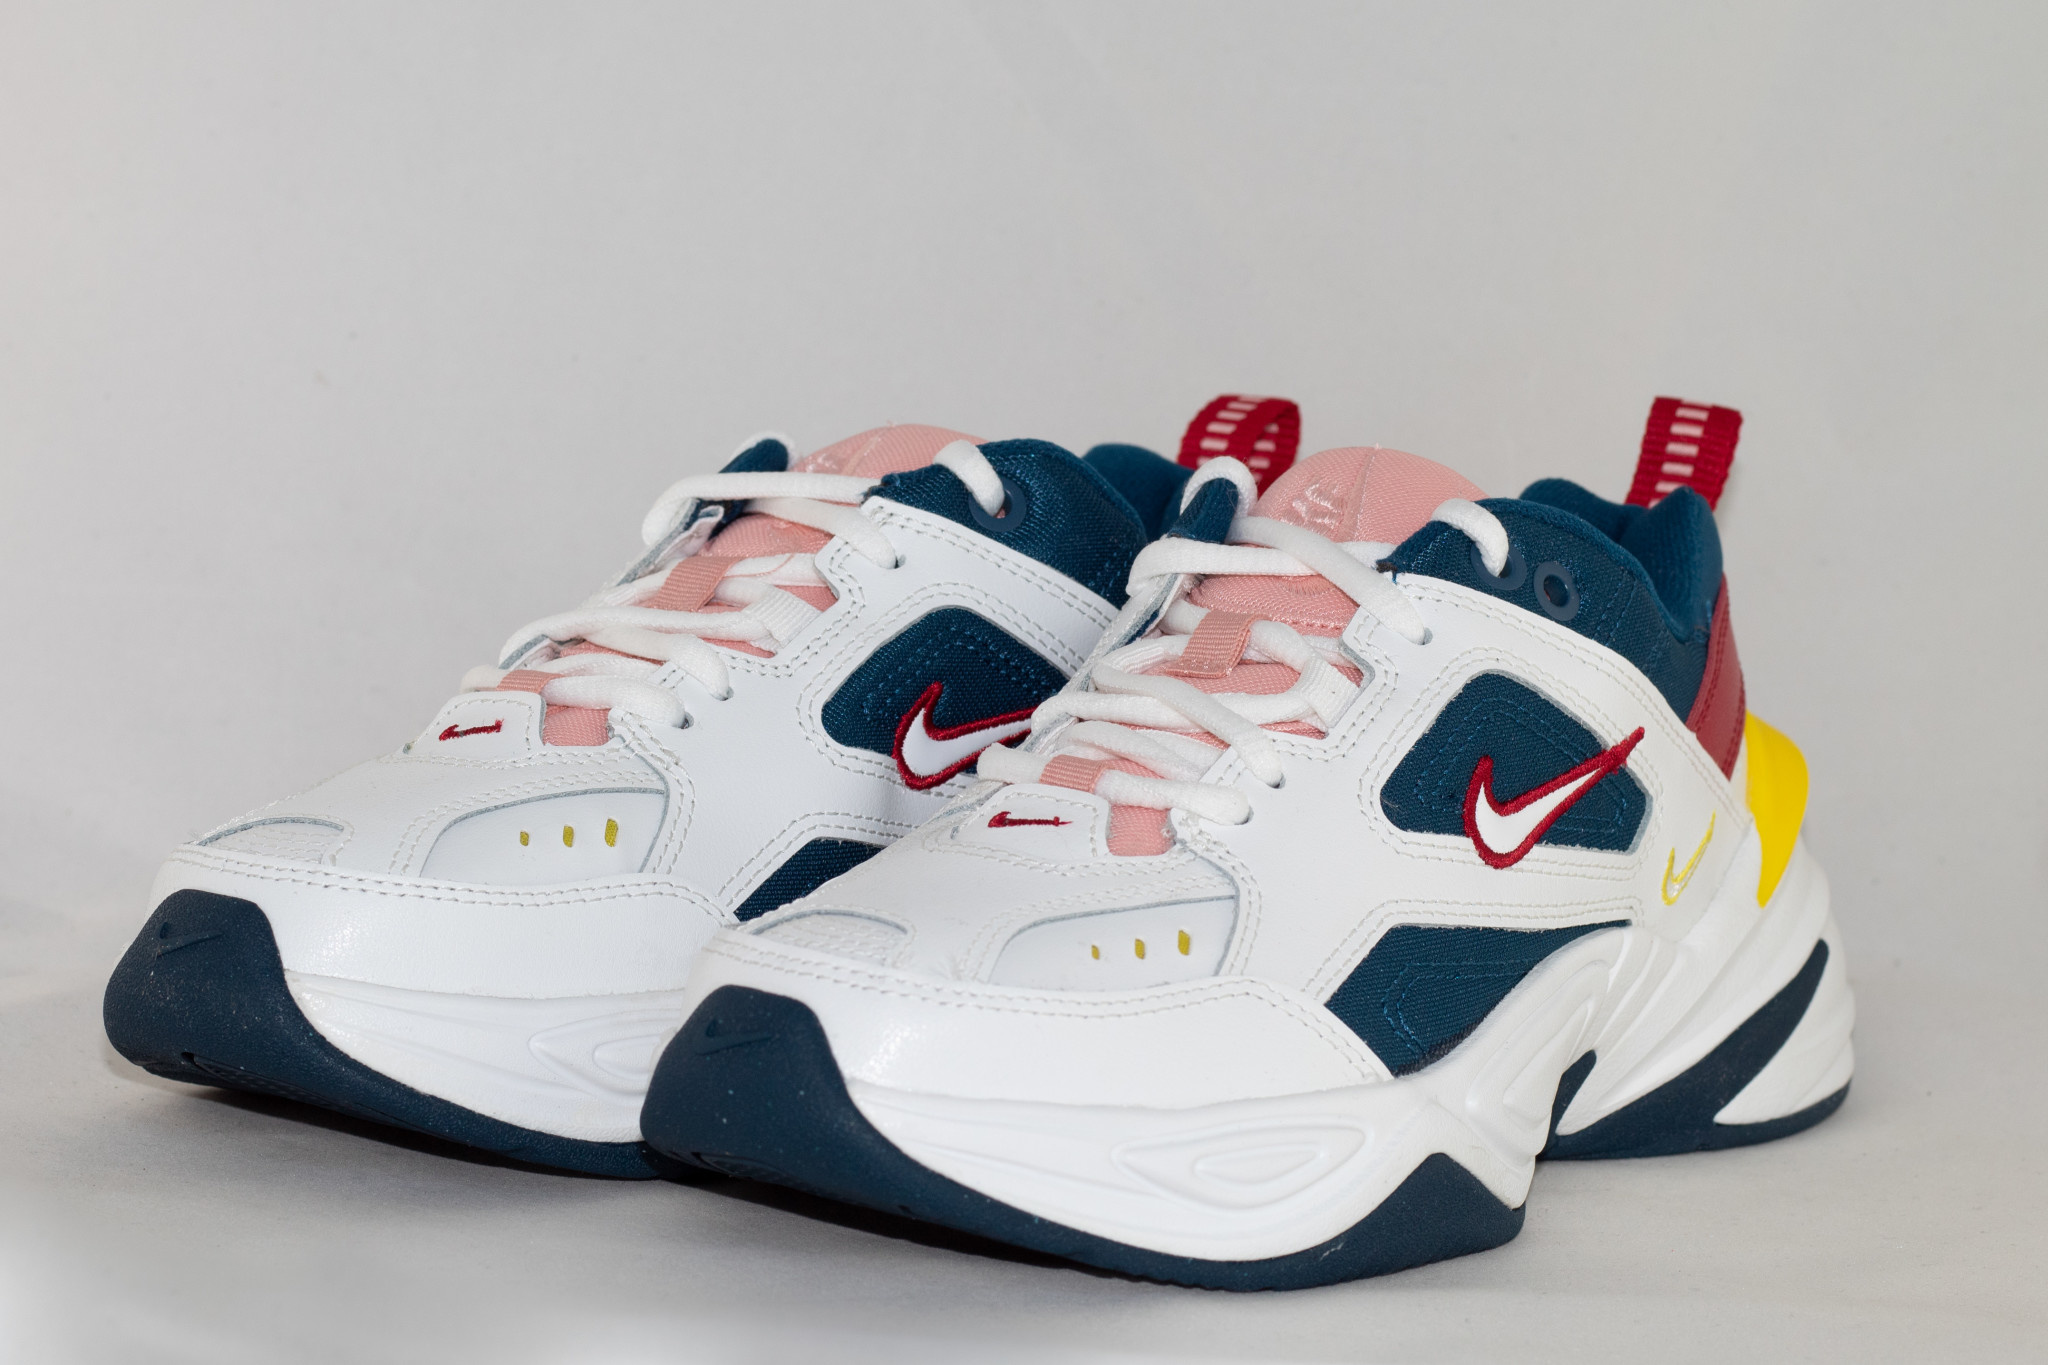 Nike NIKE M2K TEKNO Blue Force/ Summit White